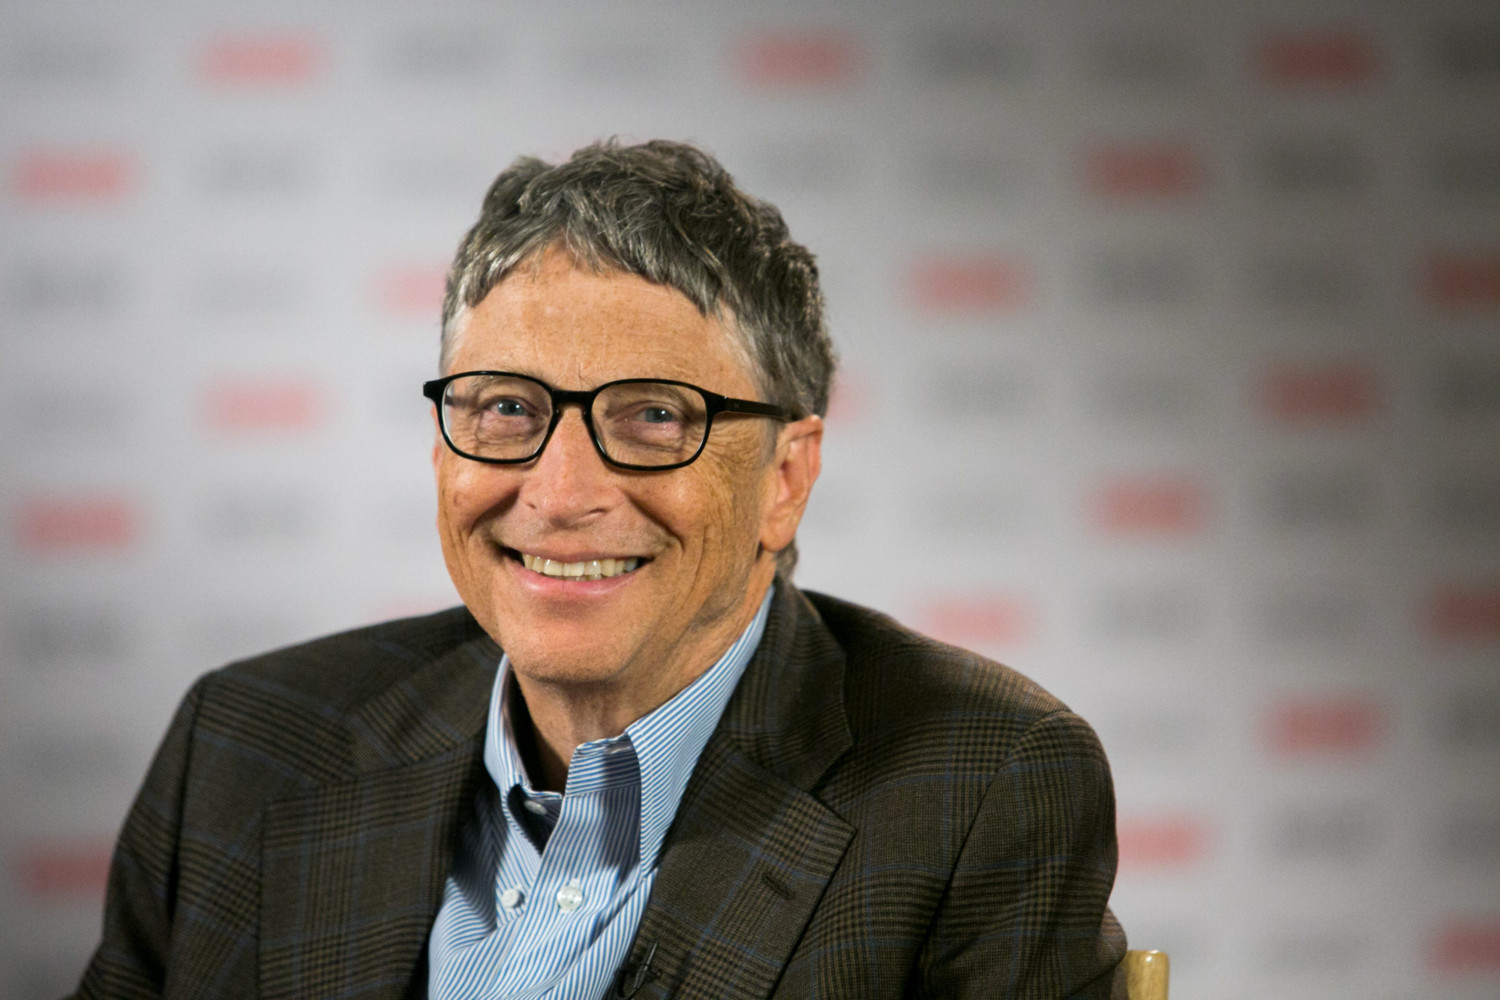 "Billionaire Bill Gates, co-founder of Microsoft and co-chair of the Bill and Melinda Gates Foundation, smiles before an interview with Bloomberg Television at the Sibos financial services conference in Boston, Massachusetts, U.S., on Thursday, Oct. 2, 2014. Gates said he is ""very happy"" with Microsoft chief executive officer Satya Nadella and he is working with the company to improve it's Office software. Photographer: Kelvin Ma/Bloomberg"